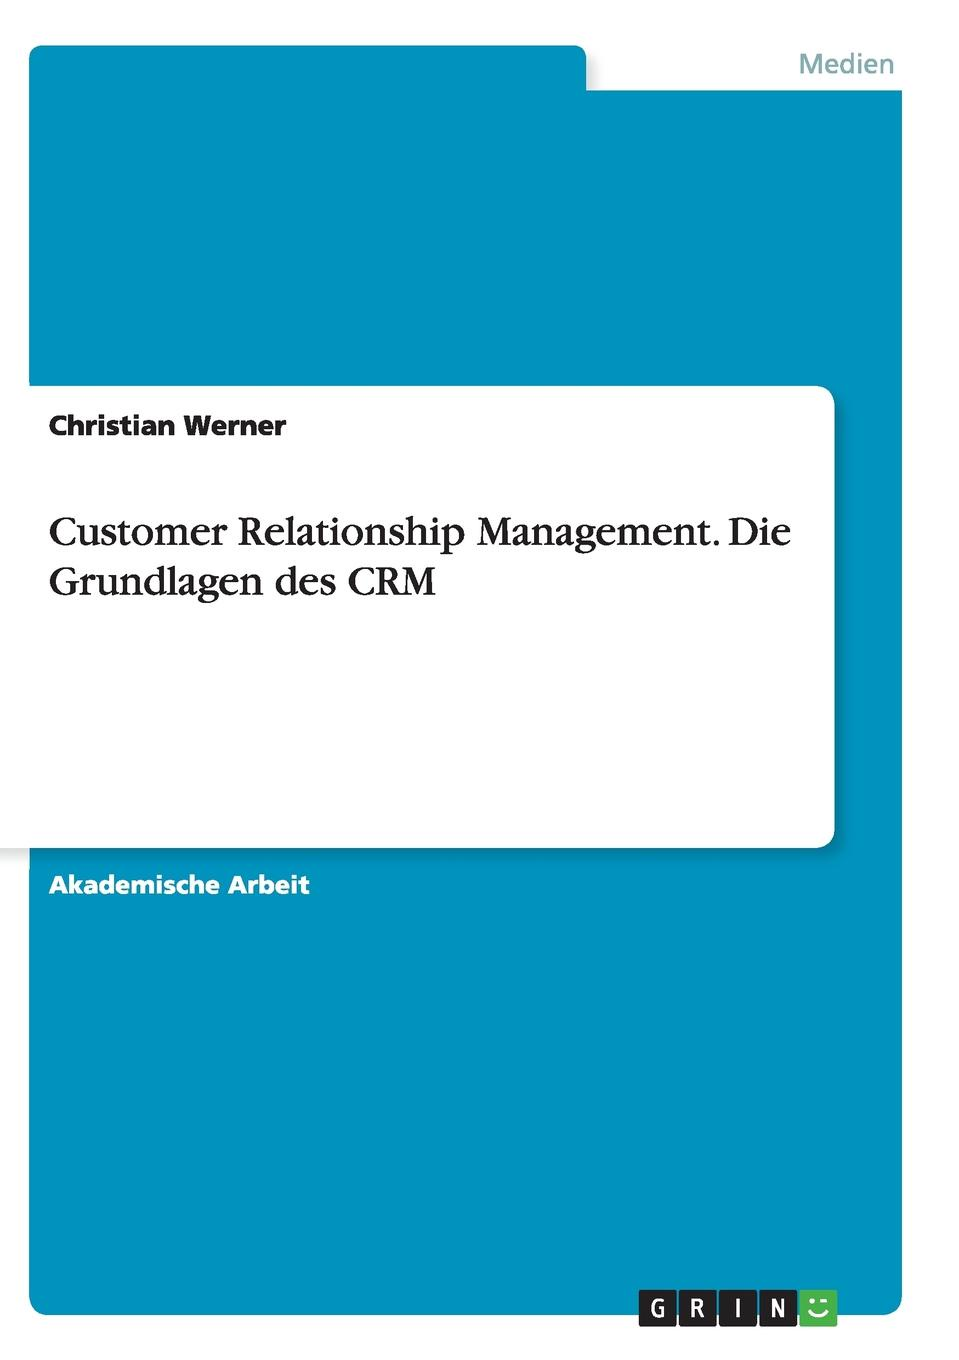 Christian Werner Customer Relationship Management. Die Grundlagen des CRM daniela schultz wandel des outbound zum inbound marketing content marketing als erfolgs und zukunftsfaktor hinsichtlich markenfuhrung und unternehmenskommunikation